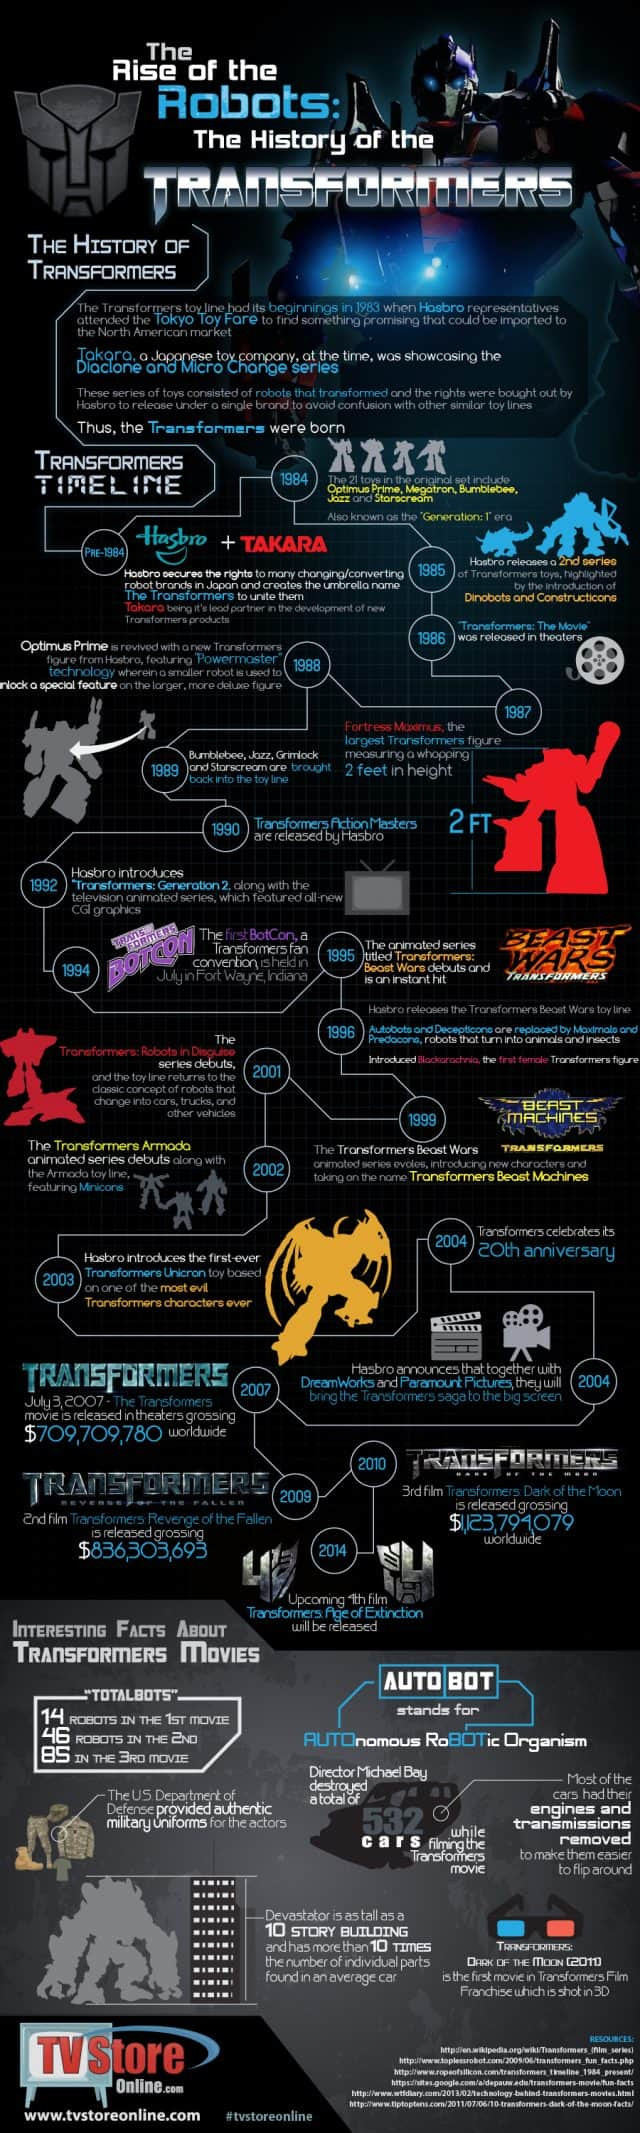 History Of Tranformers Infographic